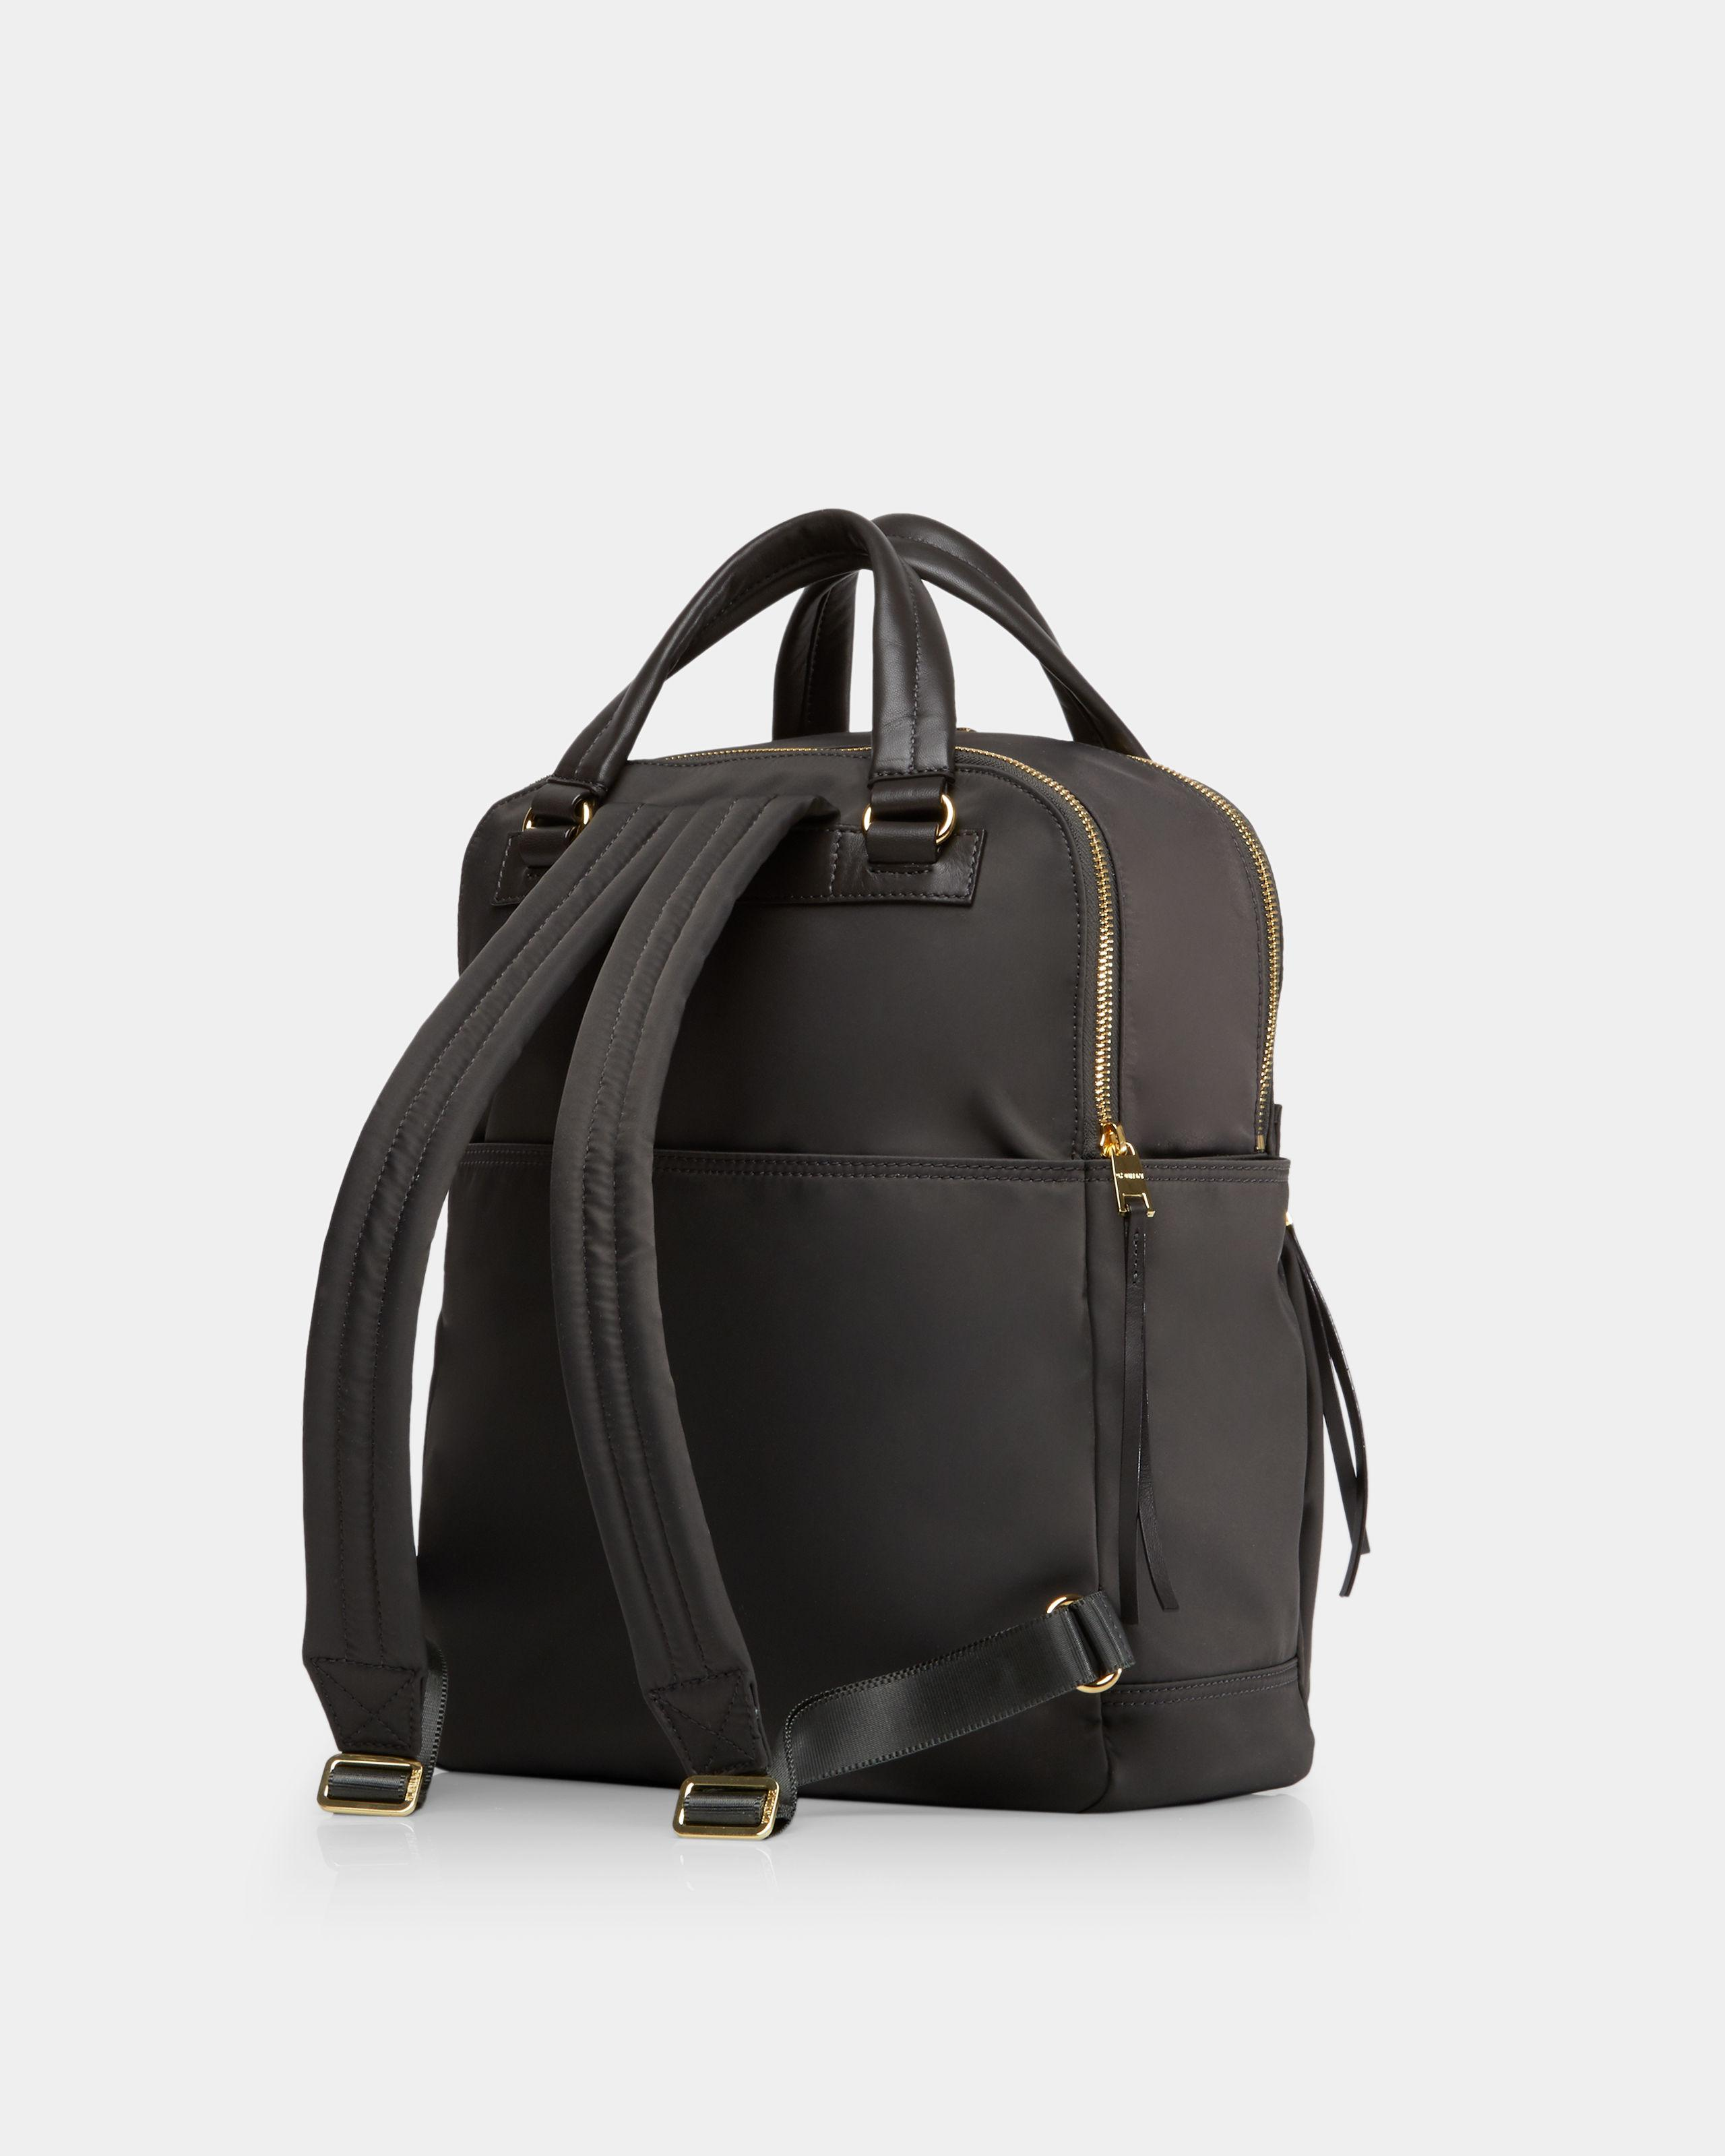 db20e44adafd MZ Wallace Anthracite Jordan Backpack in Gray - Save 5.696202531645568% -  Lyst